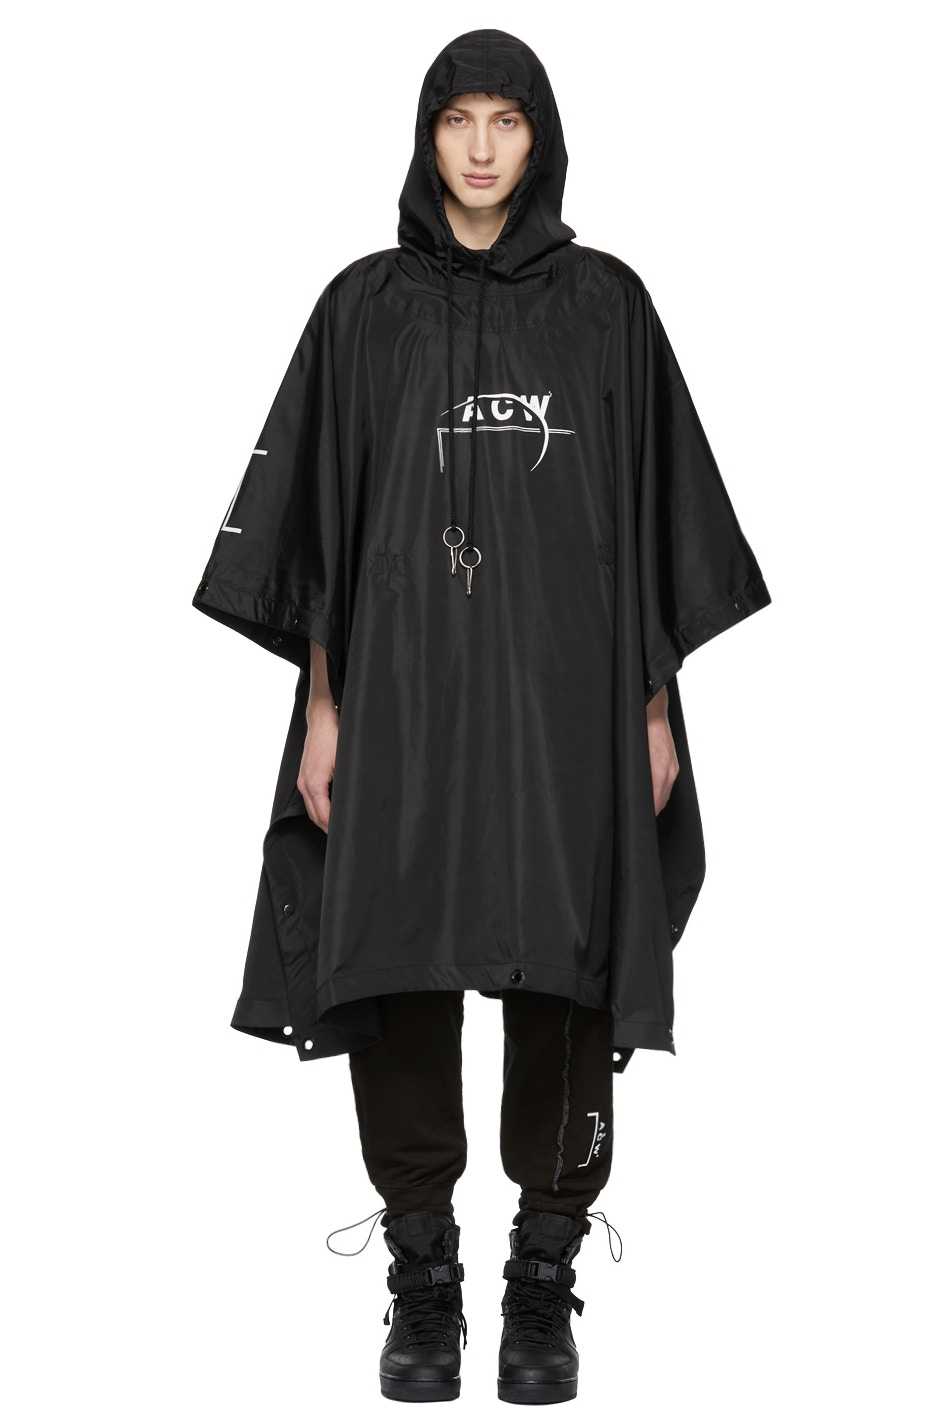 A-COLD-WALL* All-Black SS18 Exclusives Drops At SSENSE